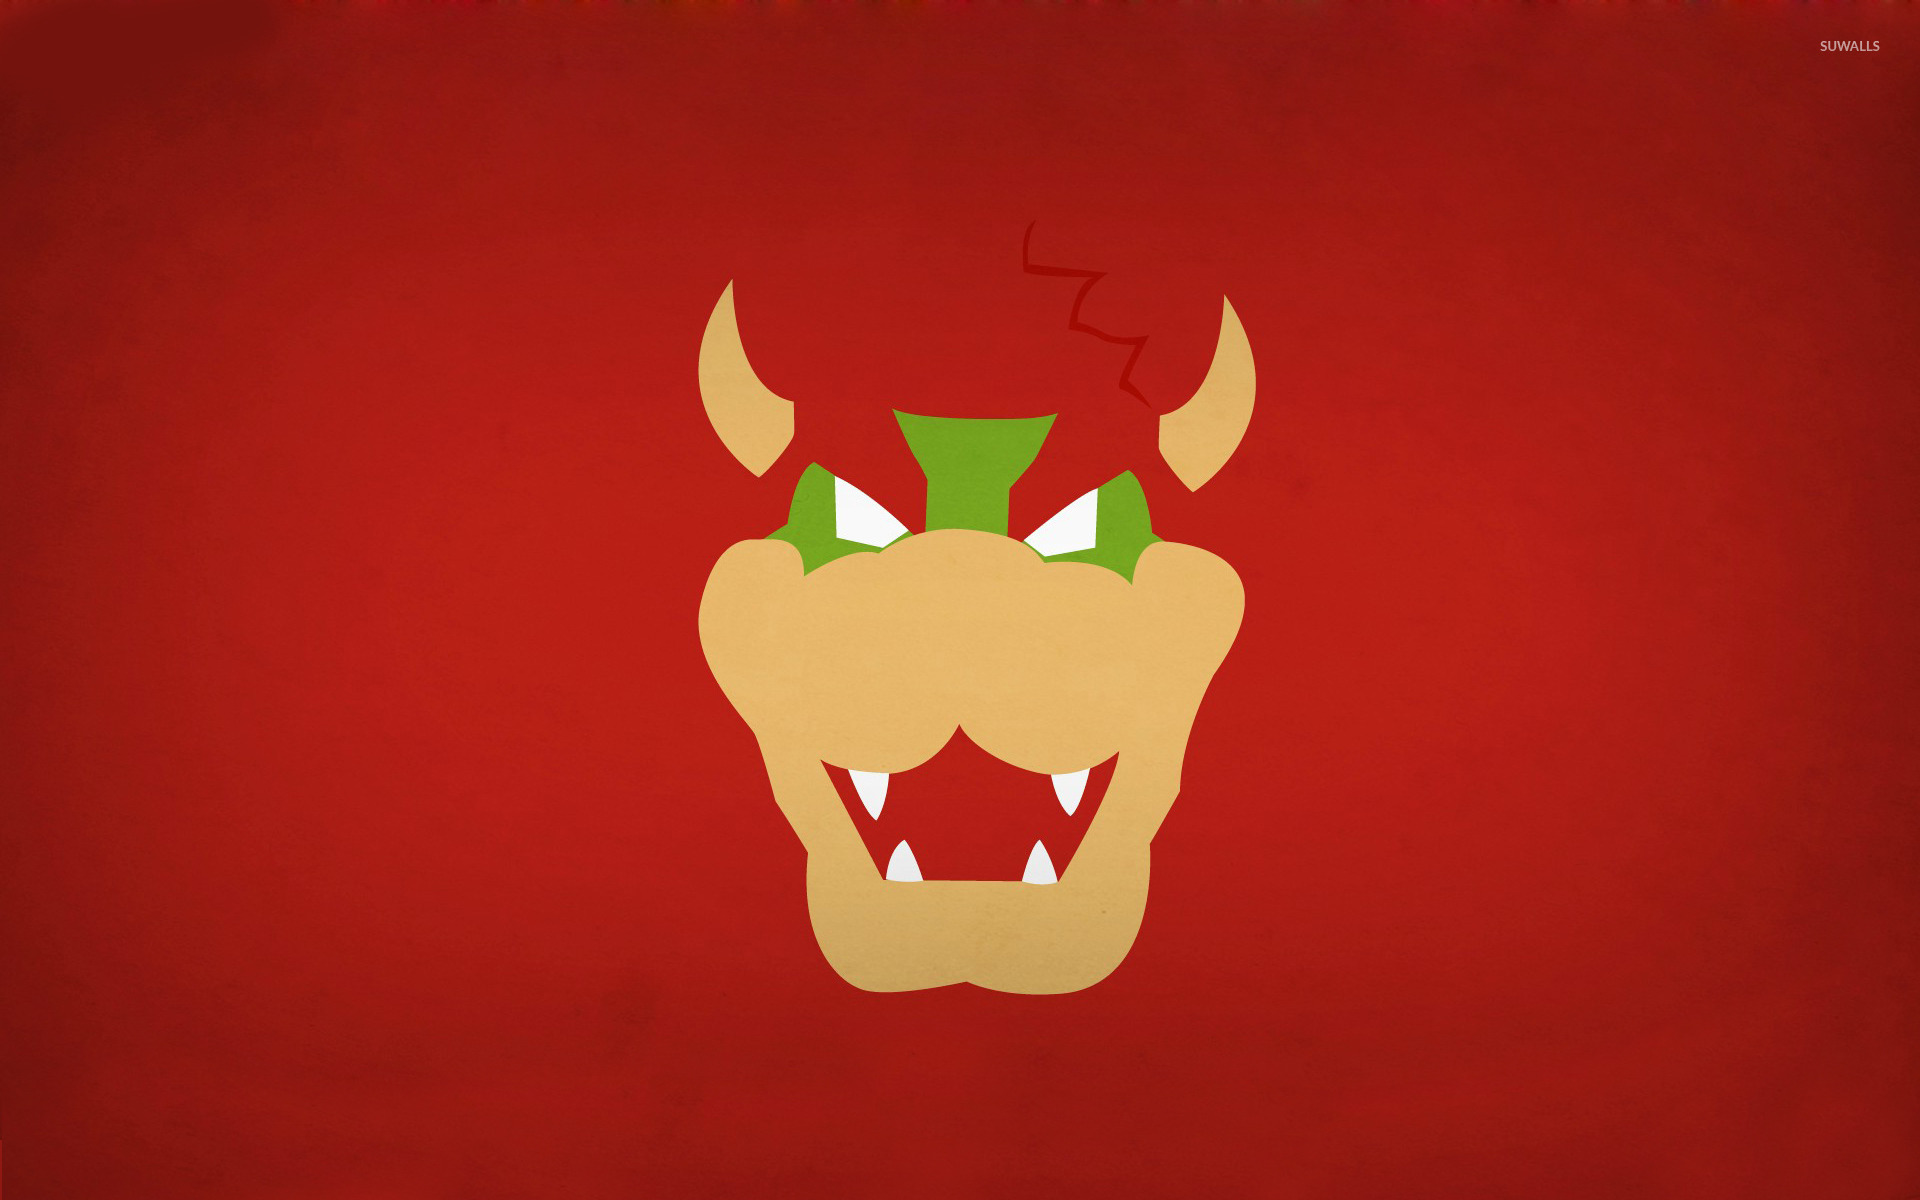 Bowser Super Mario Bros 2 Wallpaper Minimalistic Wallpapers